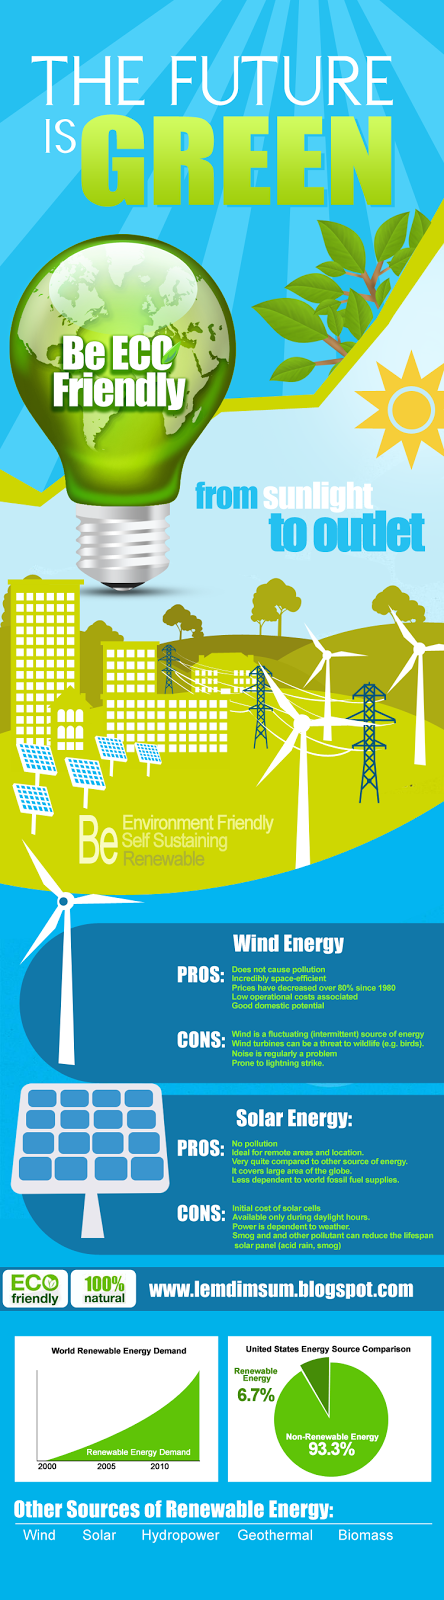 renewable solar and wind energy infographic